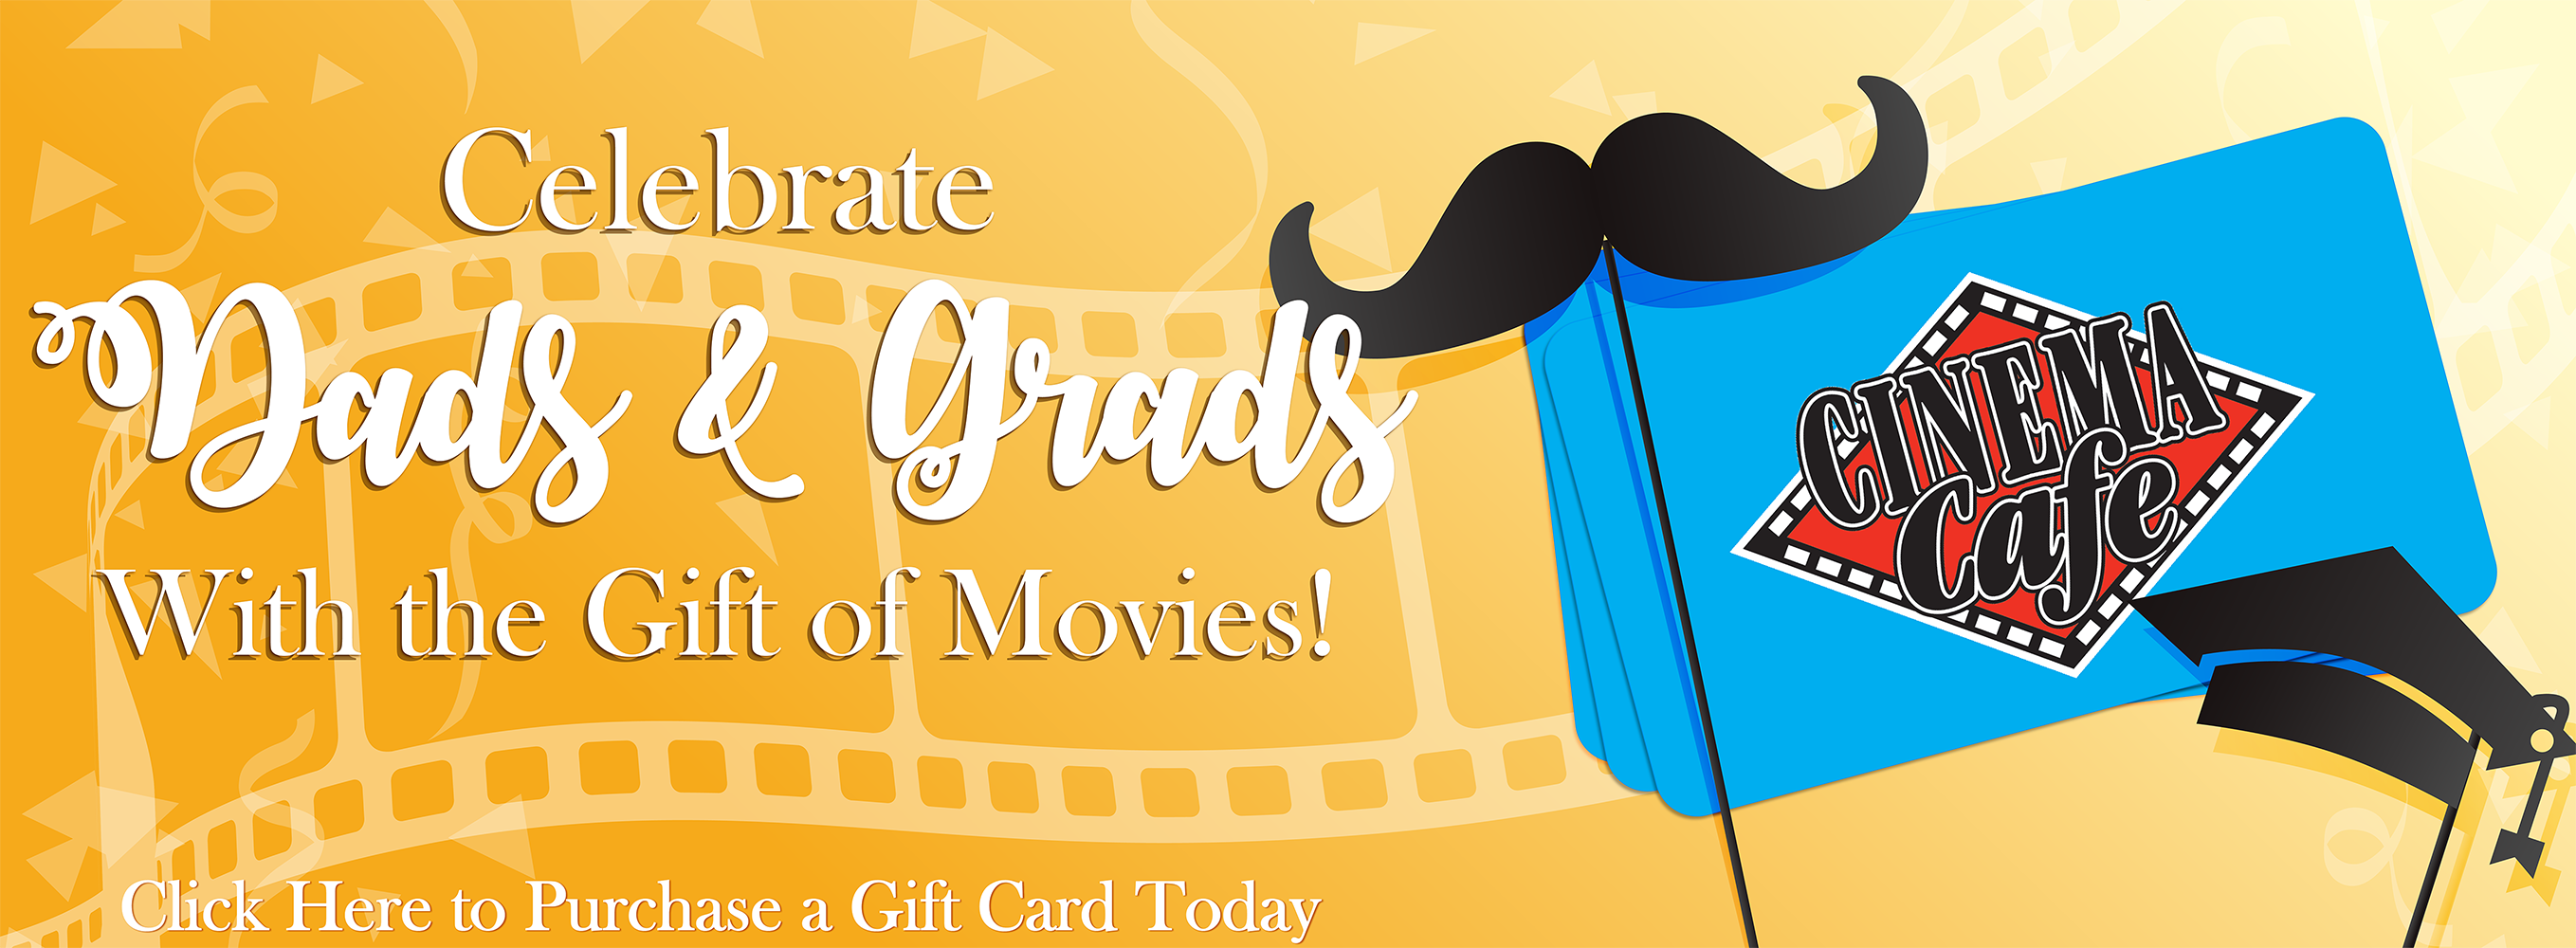 Celebrate Dads & Grads with the Gift of Movies